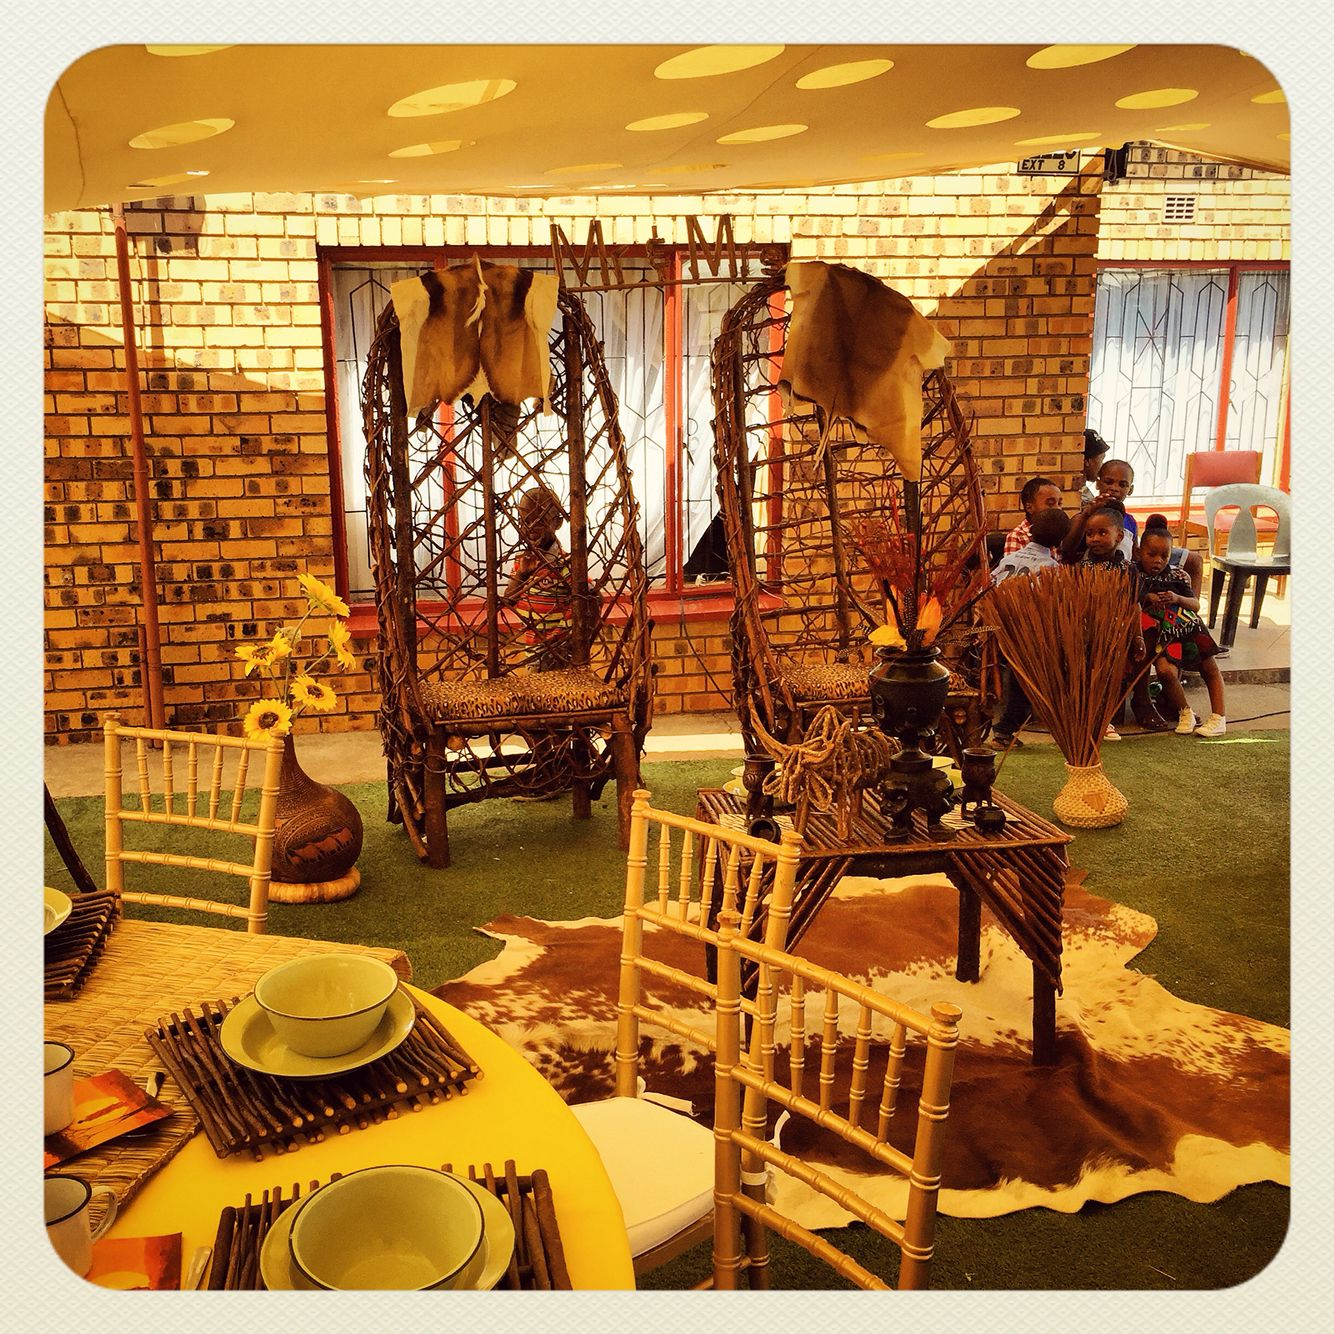 Traditional african wedding centerpieces and decor facebook traditional african wedding centerpieces and decor facebookjoburgtents or secundatentsevents junglespirit Choice Image